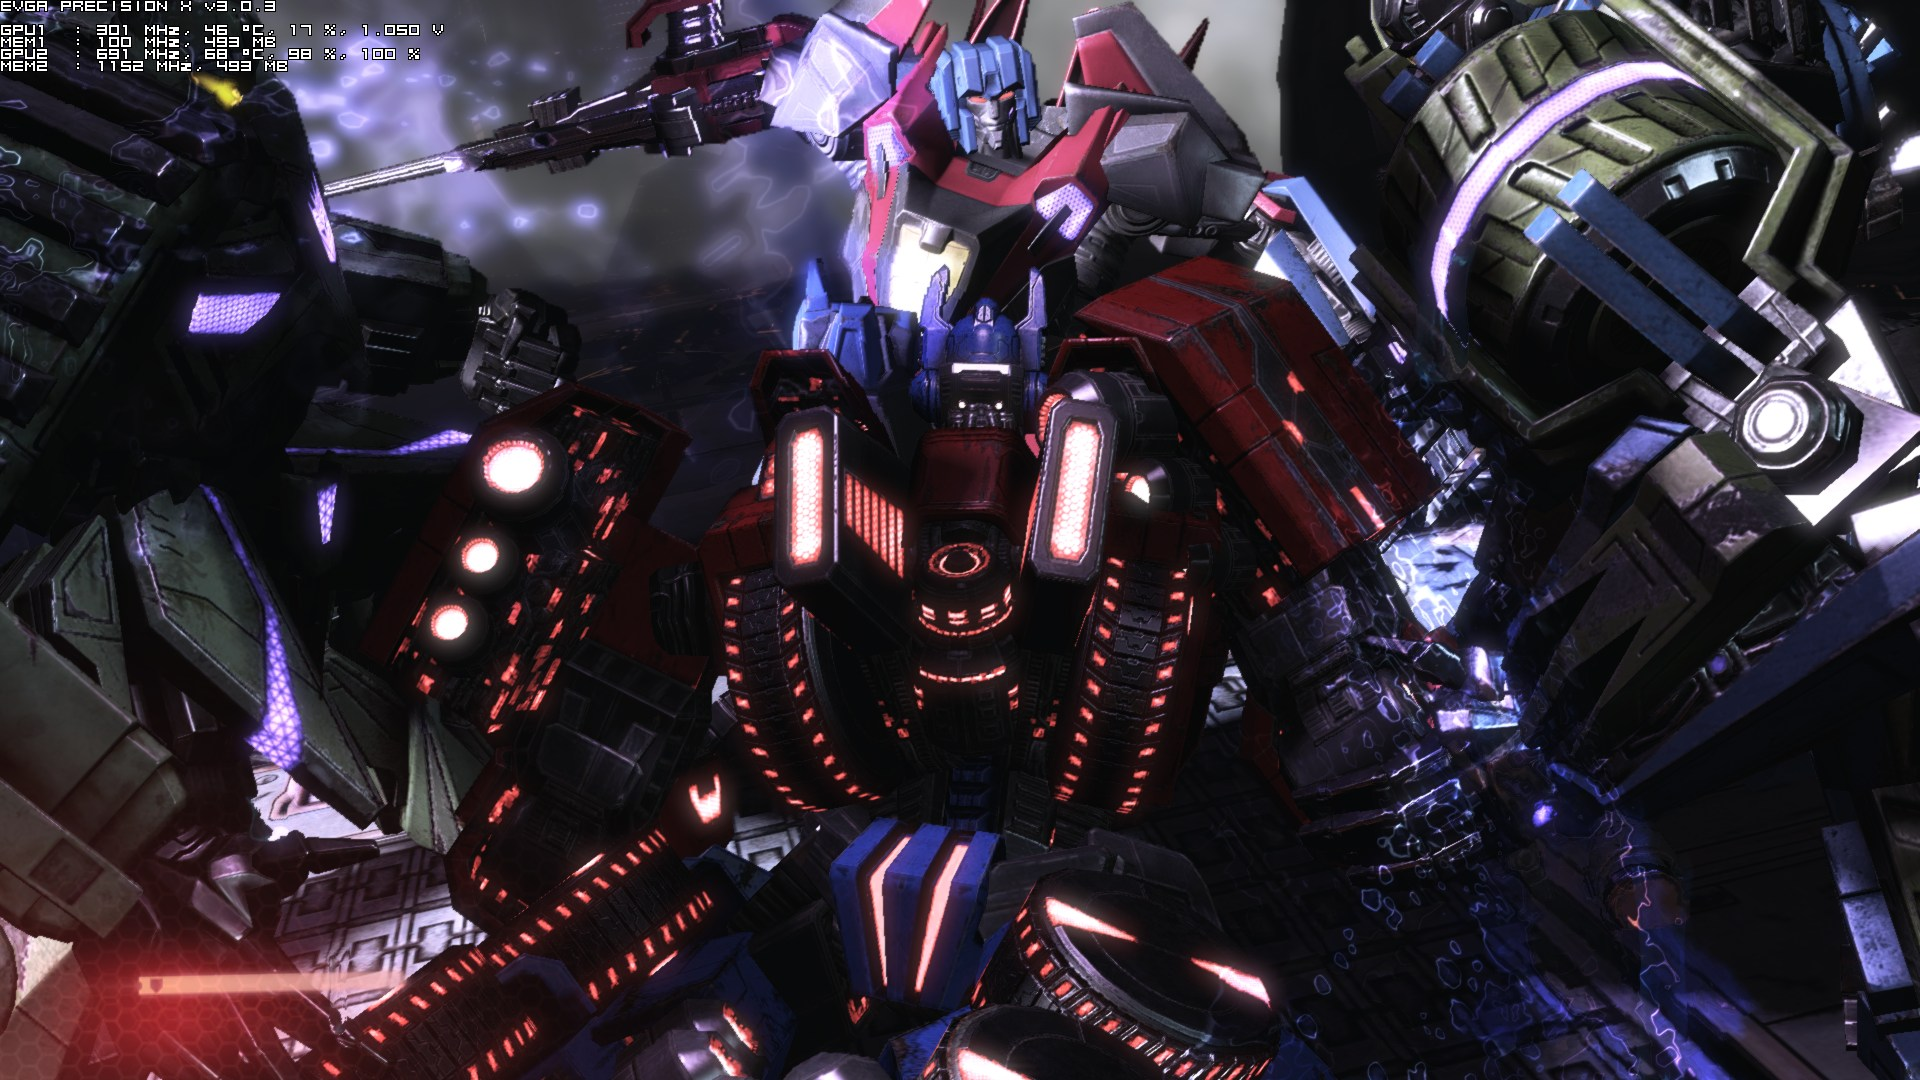 Transformers: Fall of Cybertron - PC Performance Analysis - DSOGaming